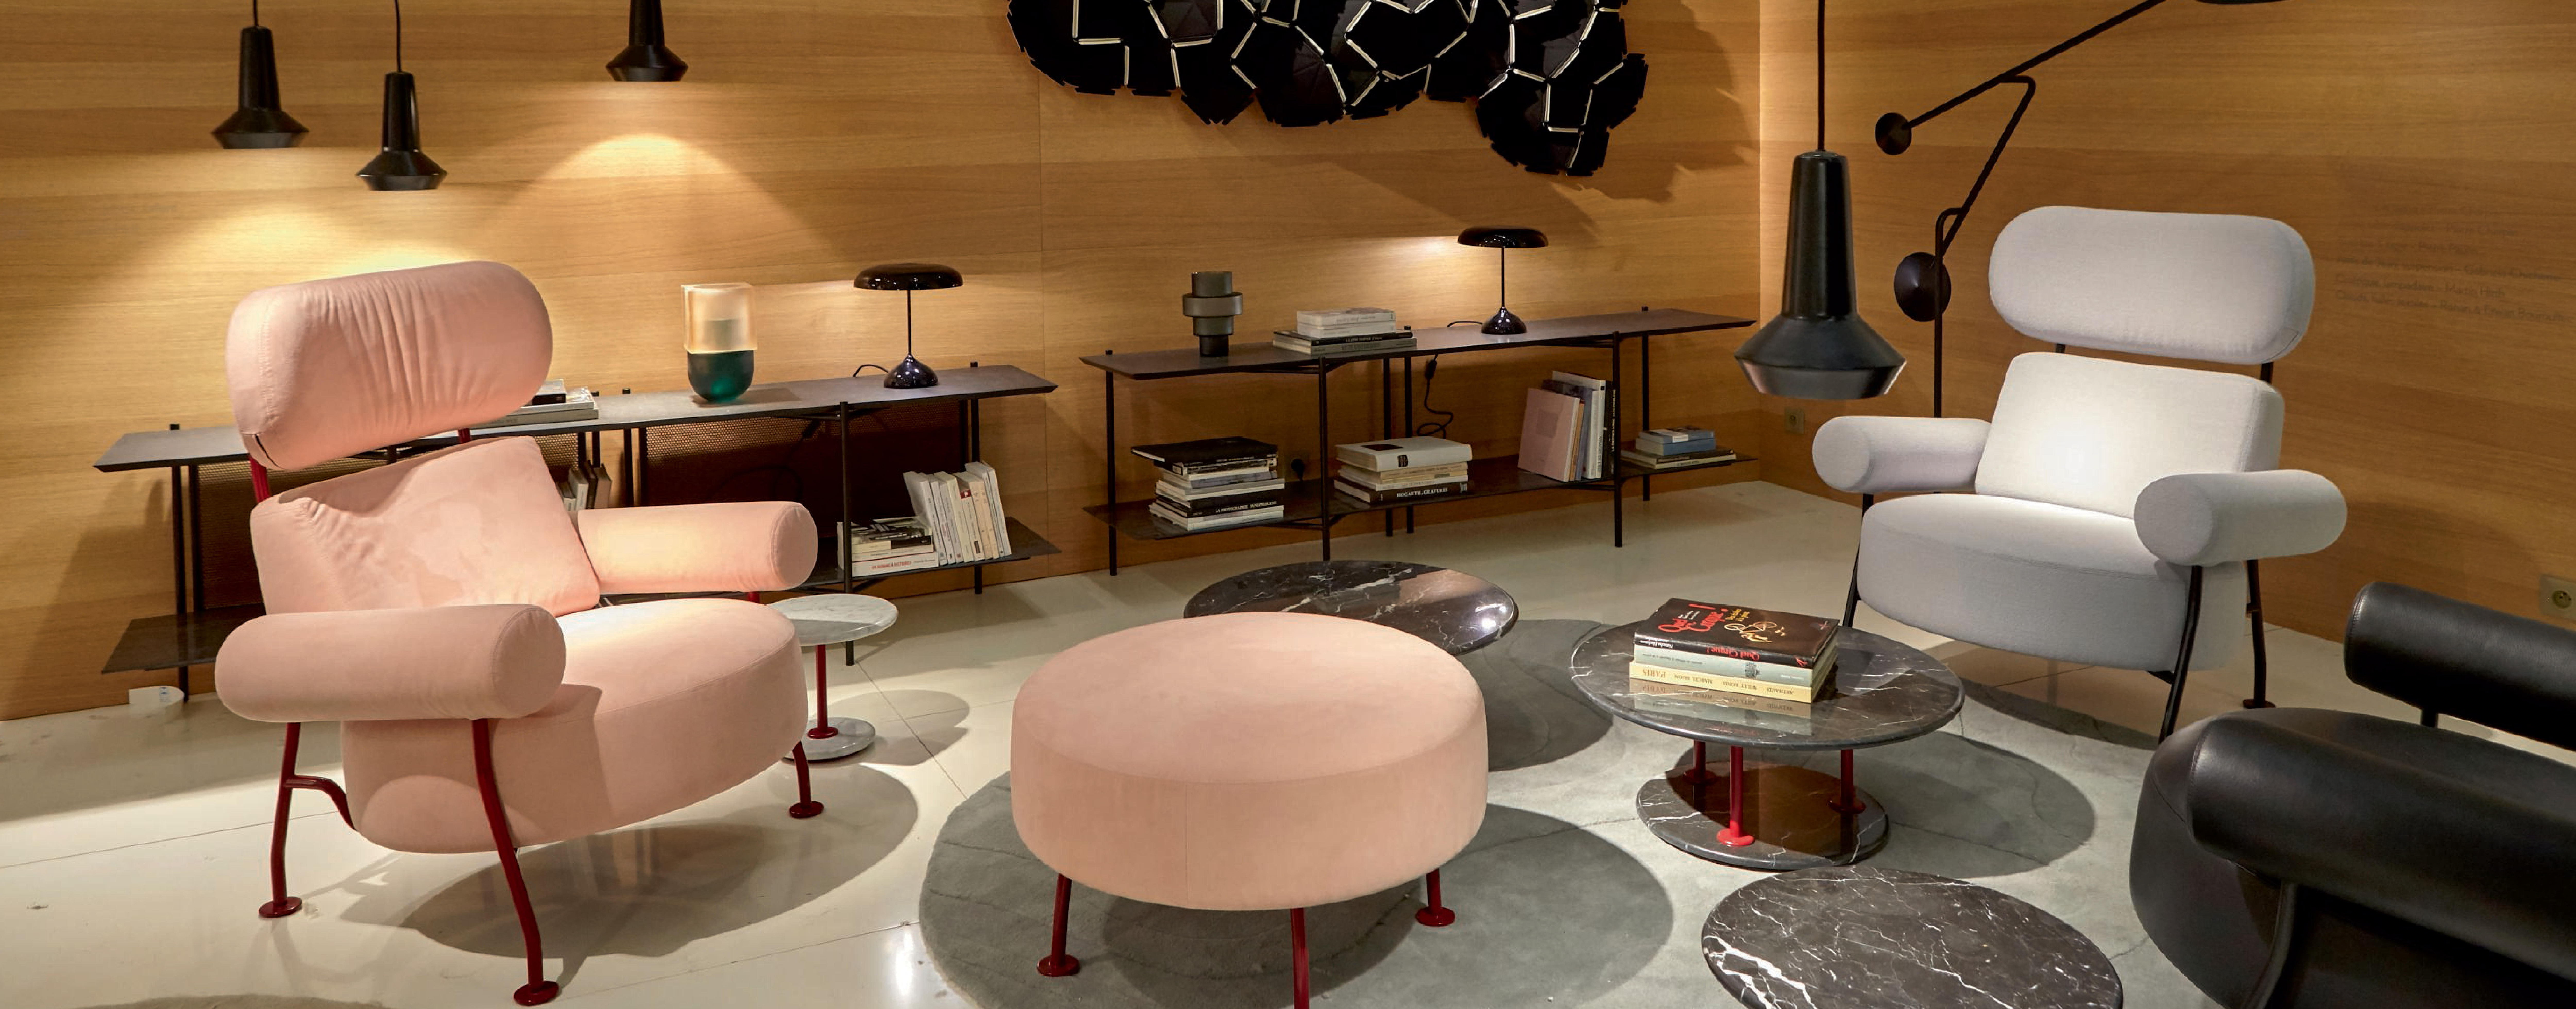 2019 Collection Ligne Roset